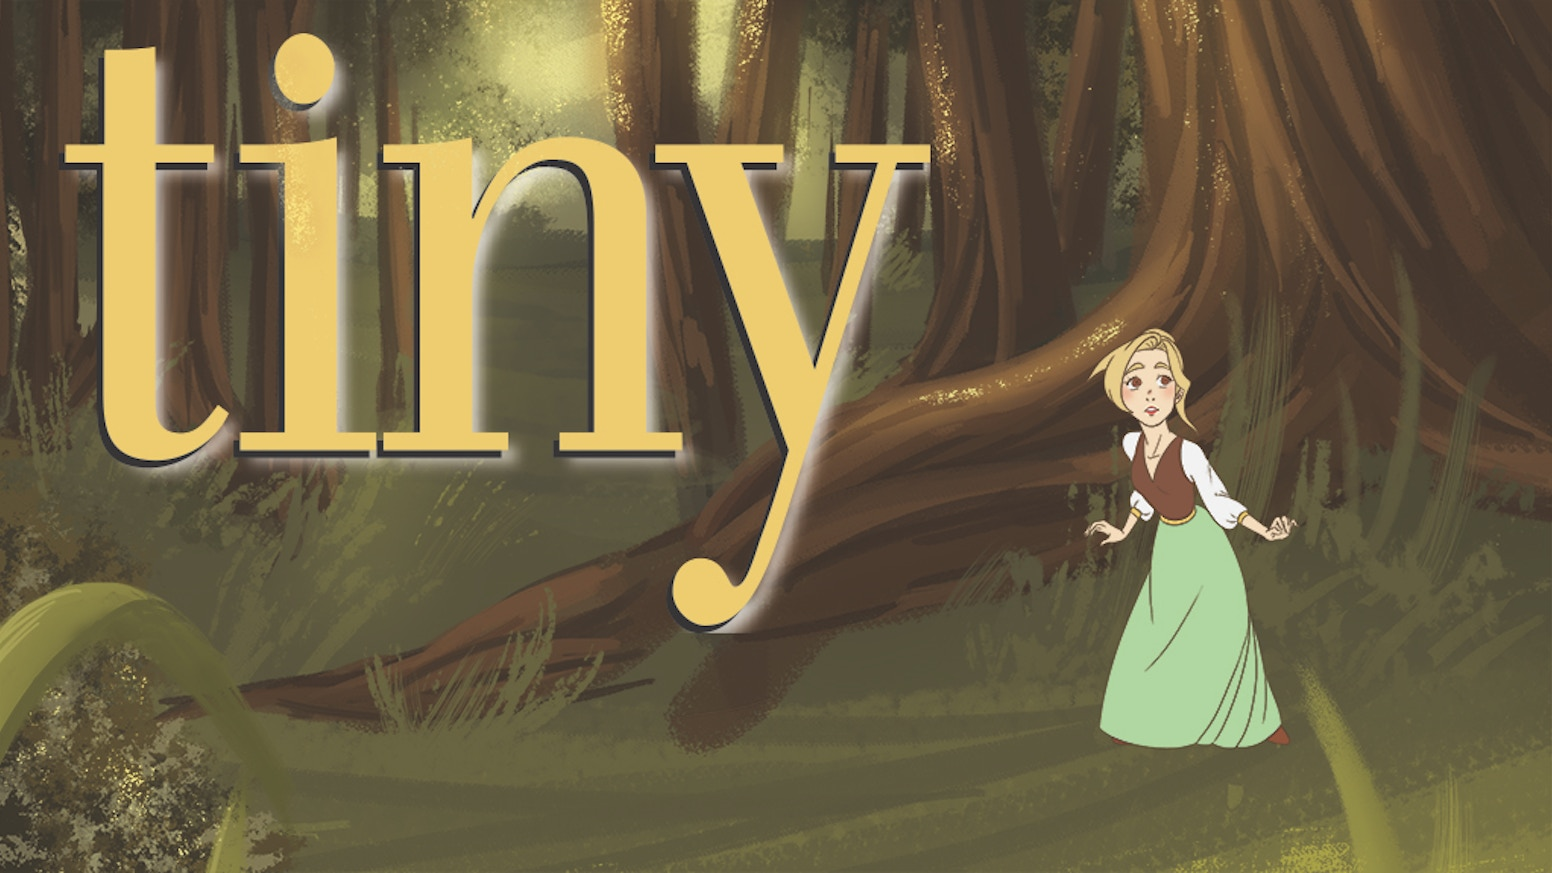 Tiny is a loose comic adaptation of the classic fairy tale, Thumbelina, by Hans Christian Andersen.